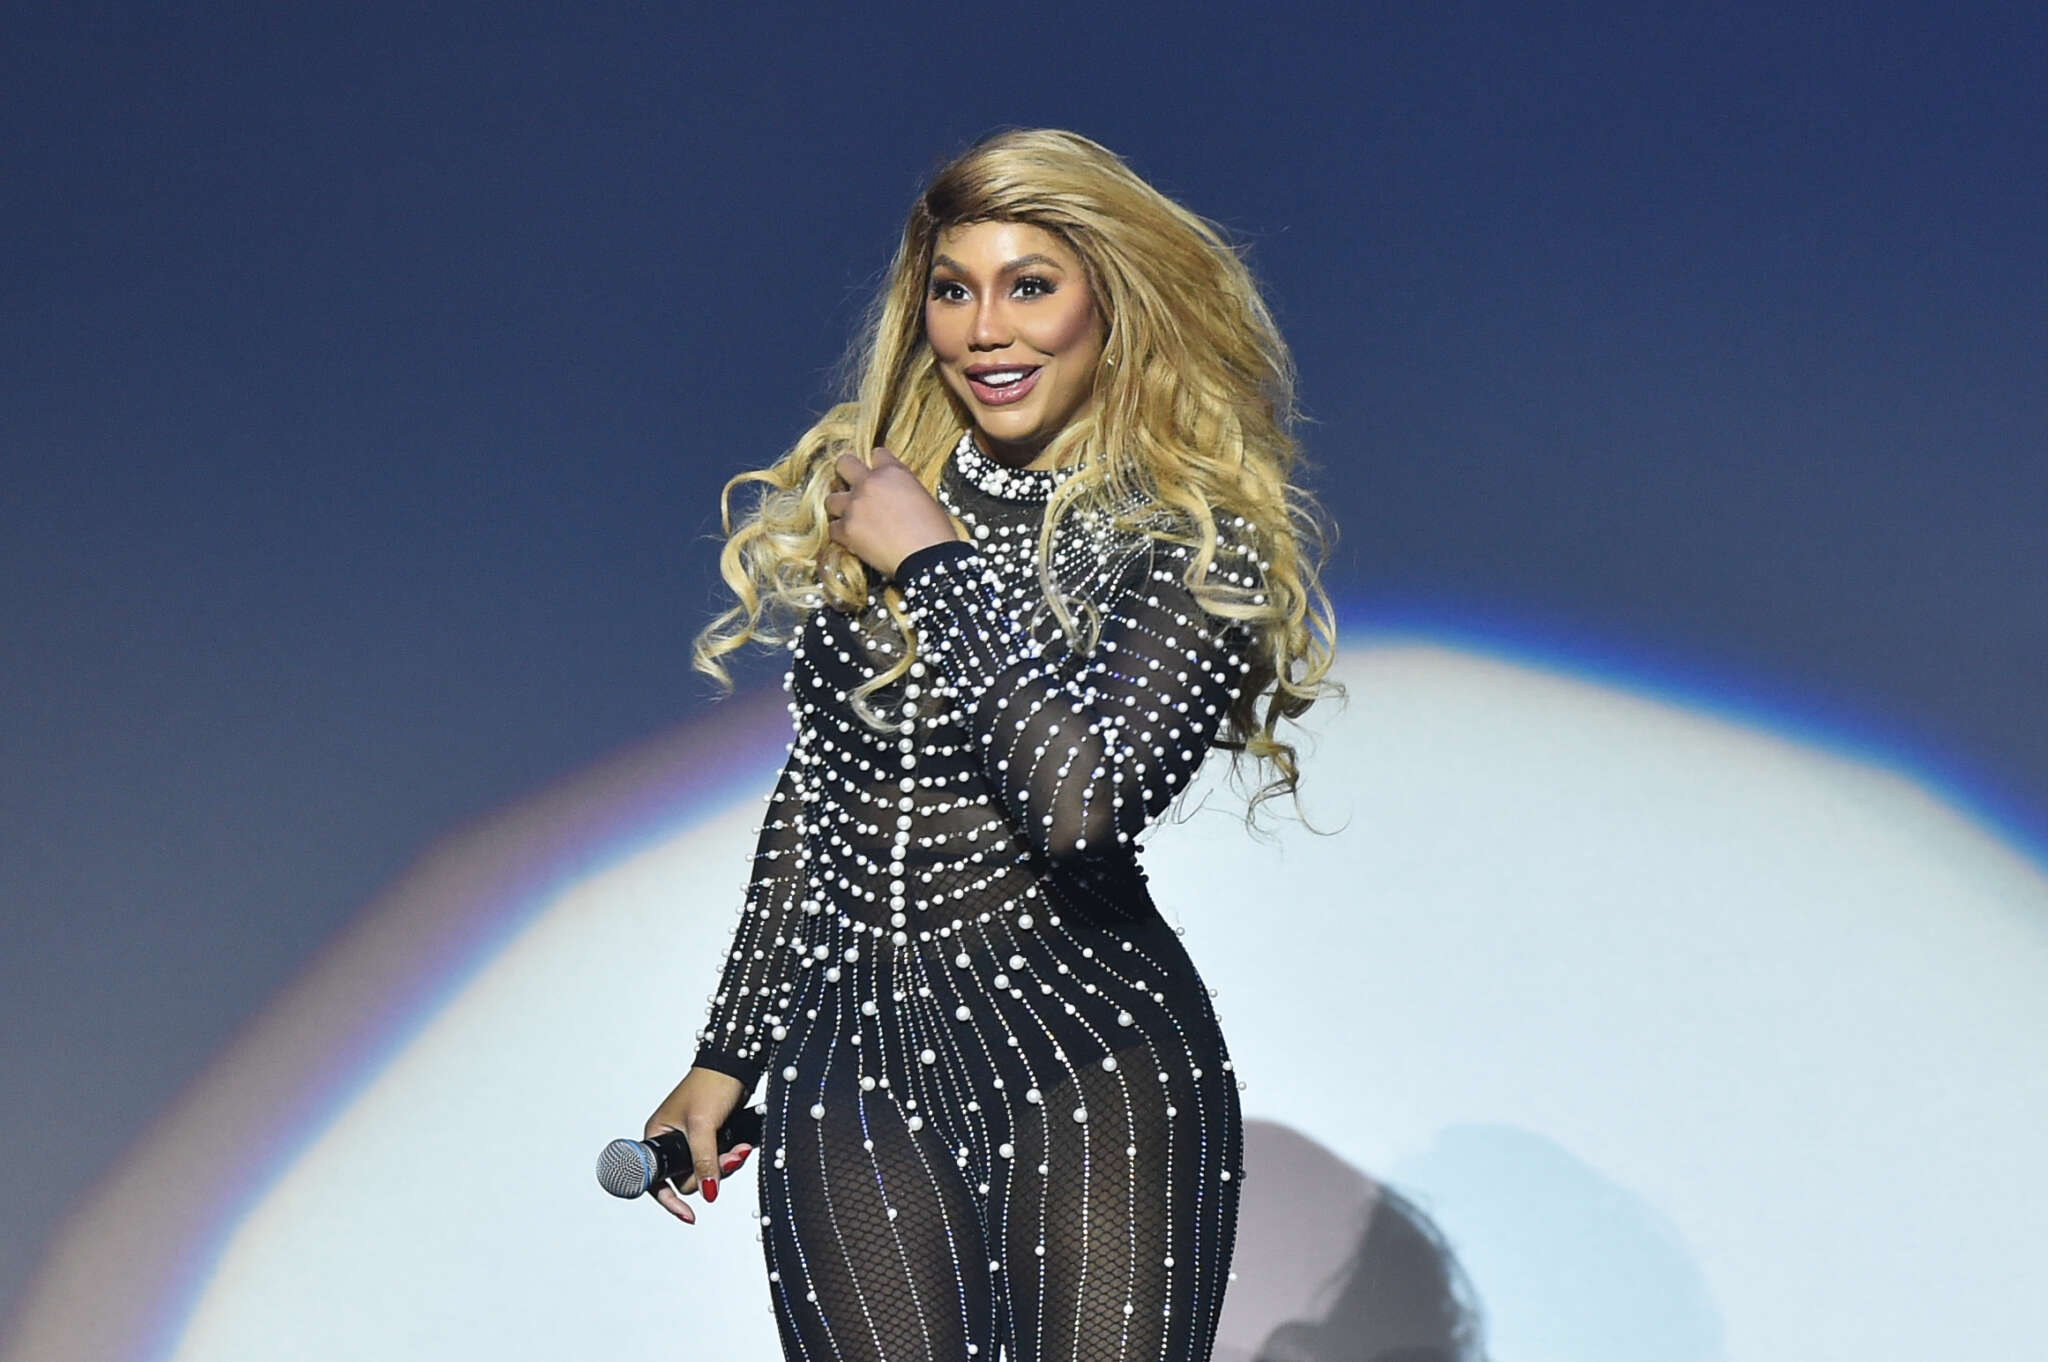 tamar-braxton-is-finally-on-cameo-check-out-the-clip-that-she-shared